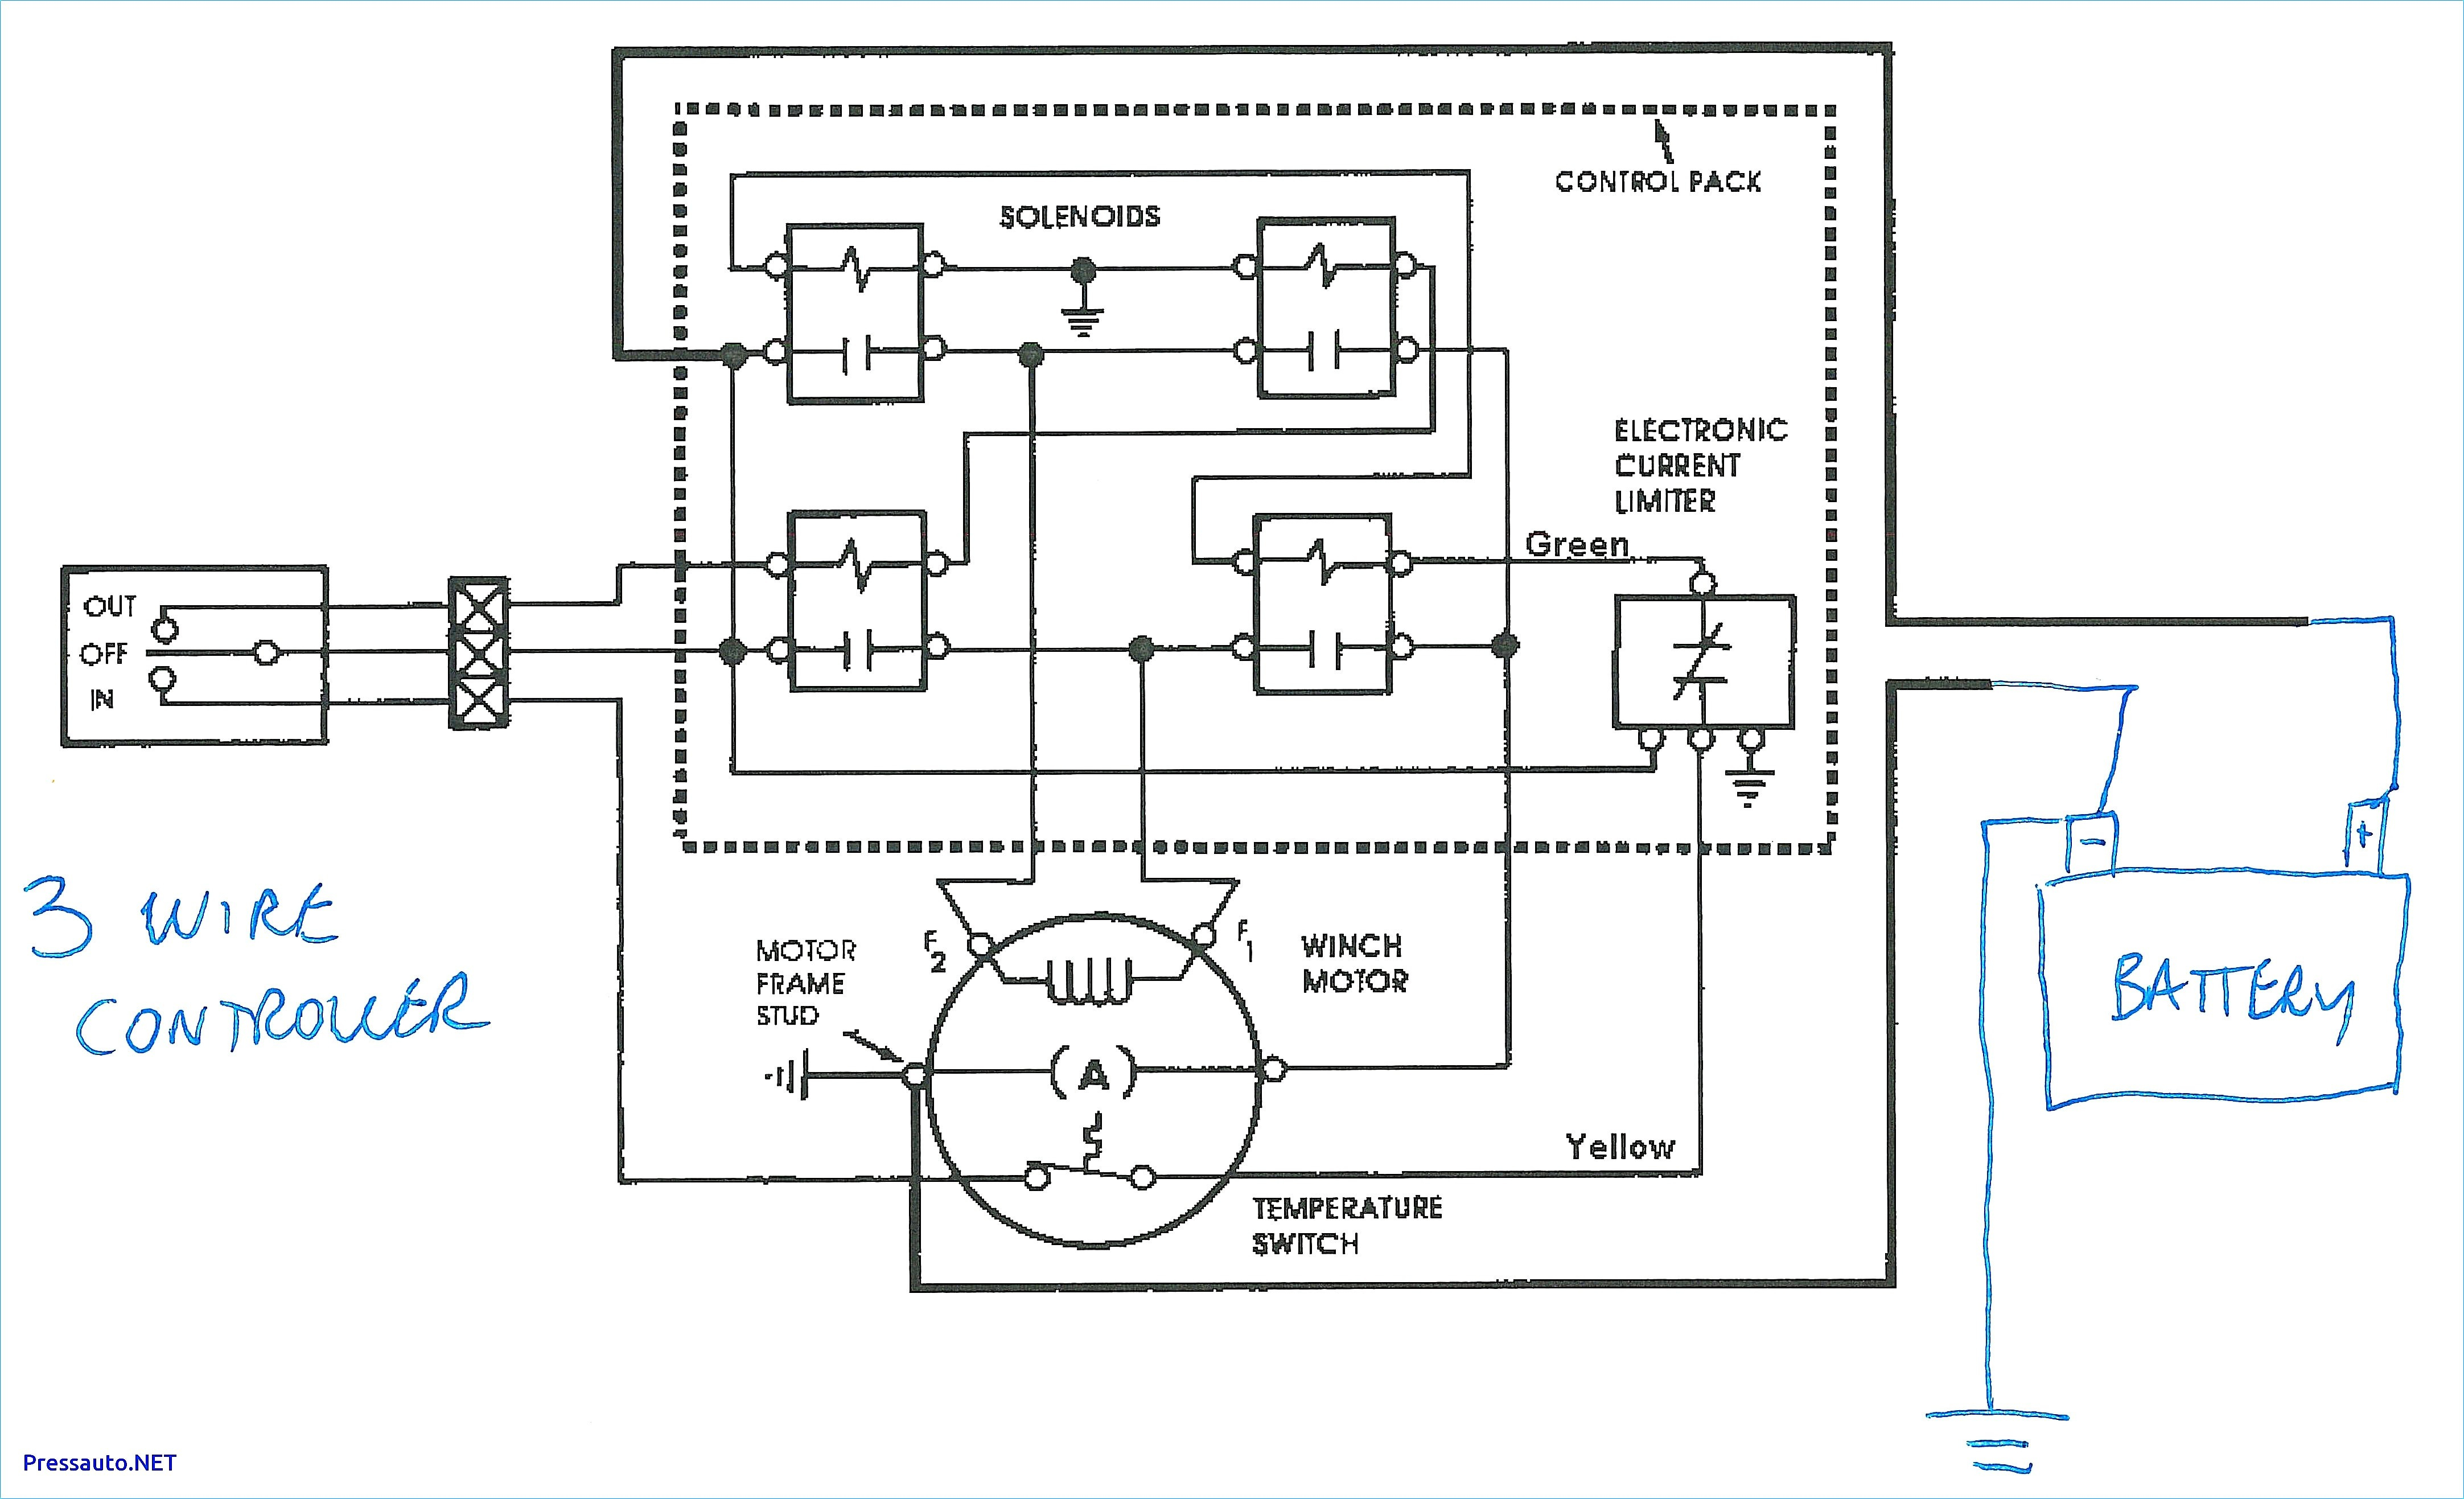 windlass wiring diagram Download-Badland Winch Wiring Diagram Unique Warn 12k Winch Wiring Diagram Wiring Diagram 1-t